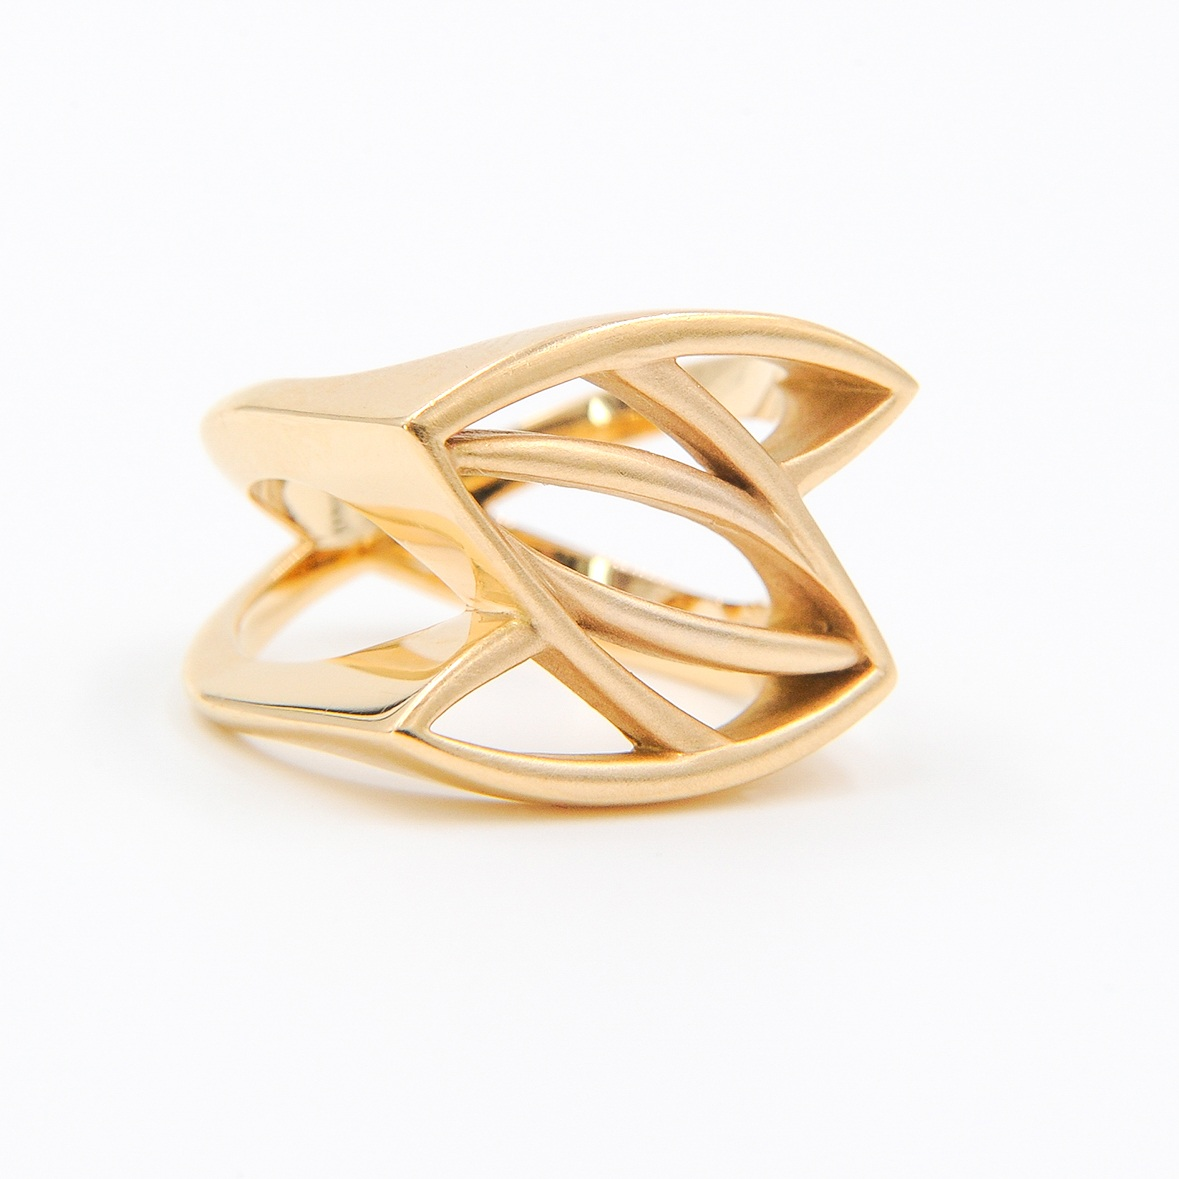 Gold Leaves Ring | 18K yellow gold